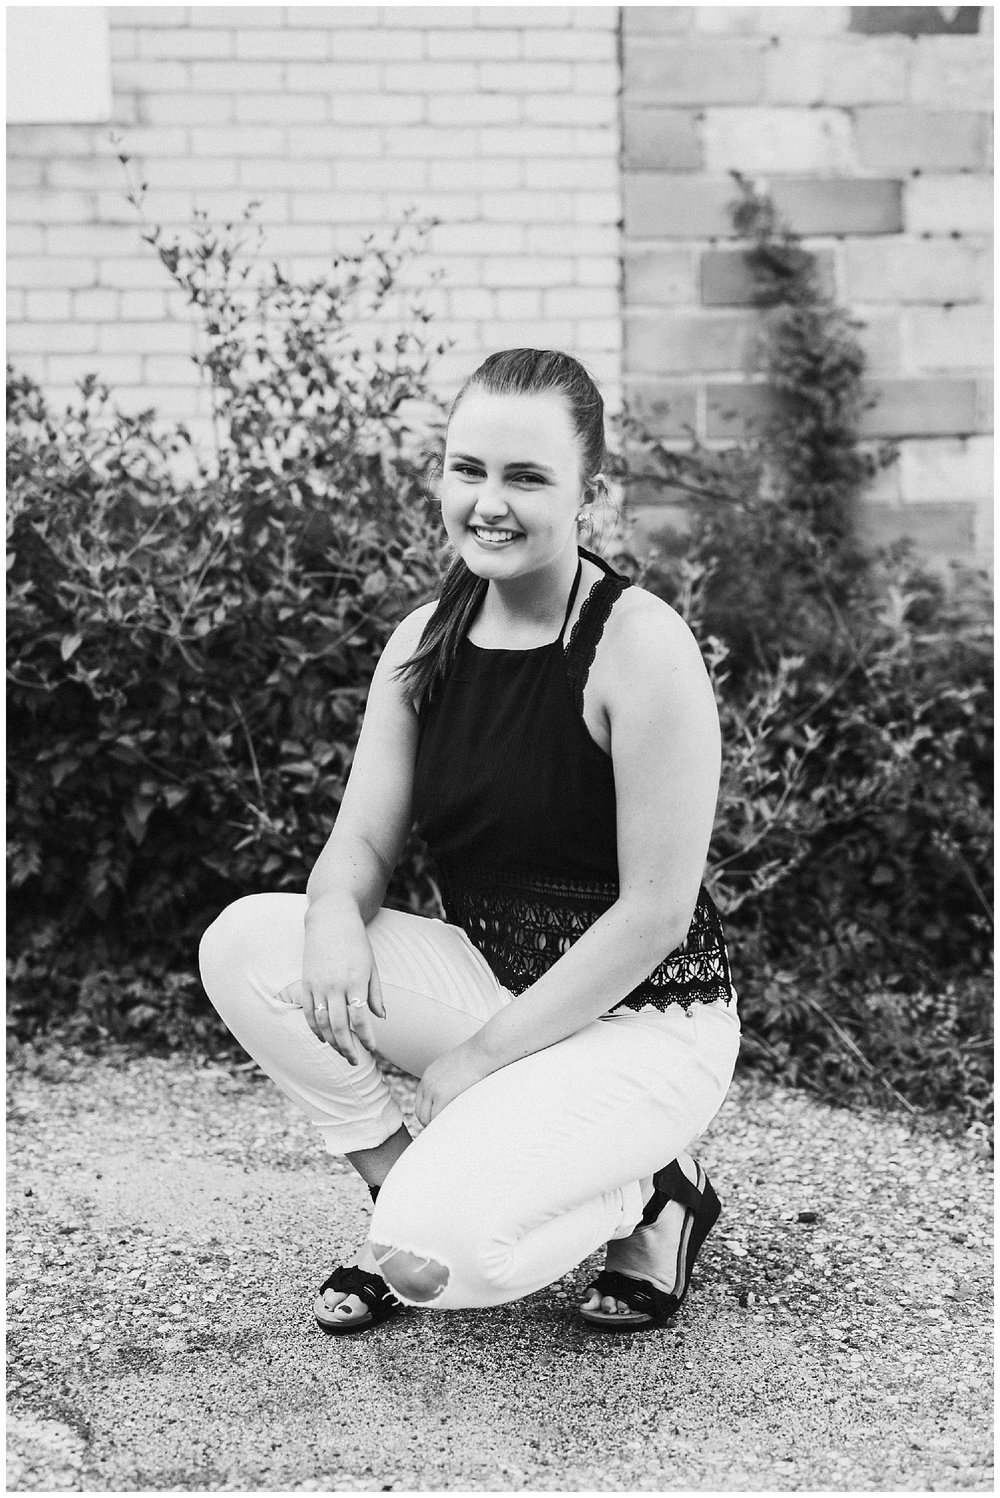 lindybeth photography - senior pictures - nicole-78.jpg